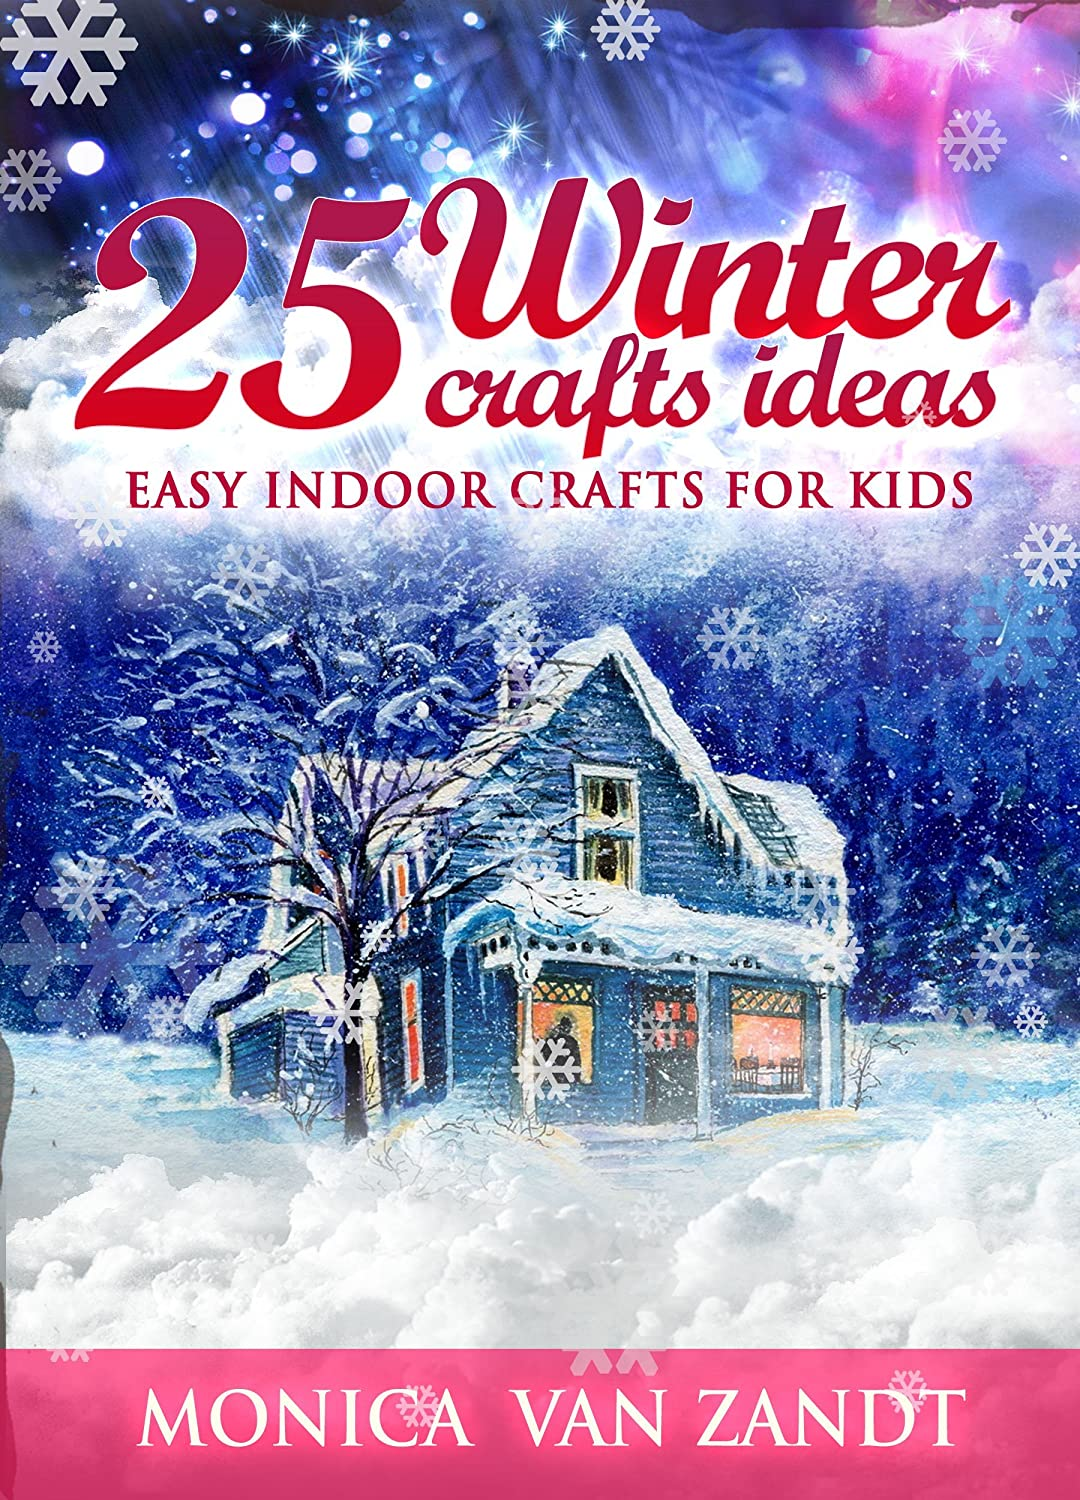 http://www.amazon.com/25-Winter-Craft-Ideas-Seasonal-ebook/dp/B00A0BV74C/ref=as_sl_pc_ss_til?tag=lettfromahome-20&linkCode=w01&linkId=SFQV5Z4IGM3X6RVM&creativeASIN=B00A0BV74C